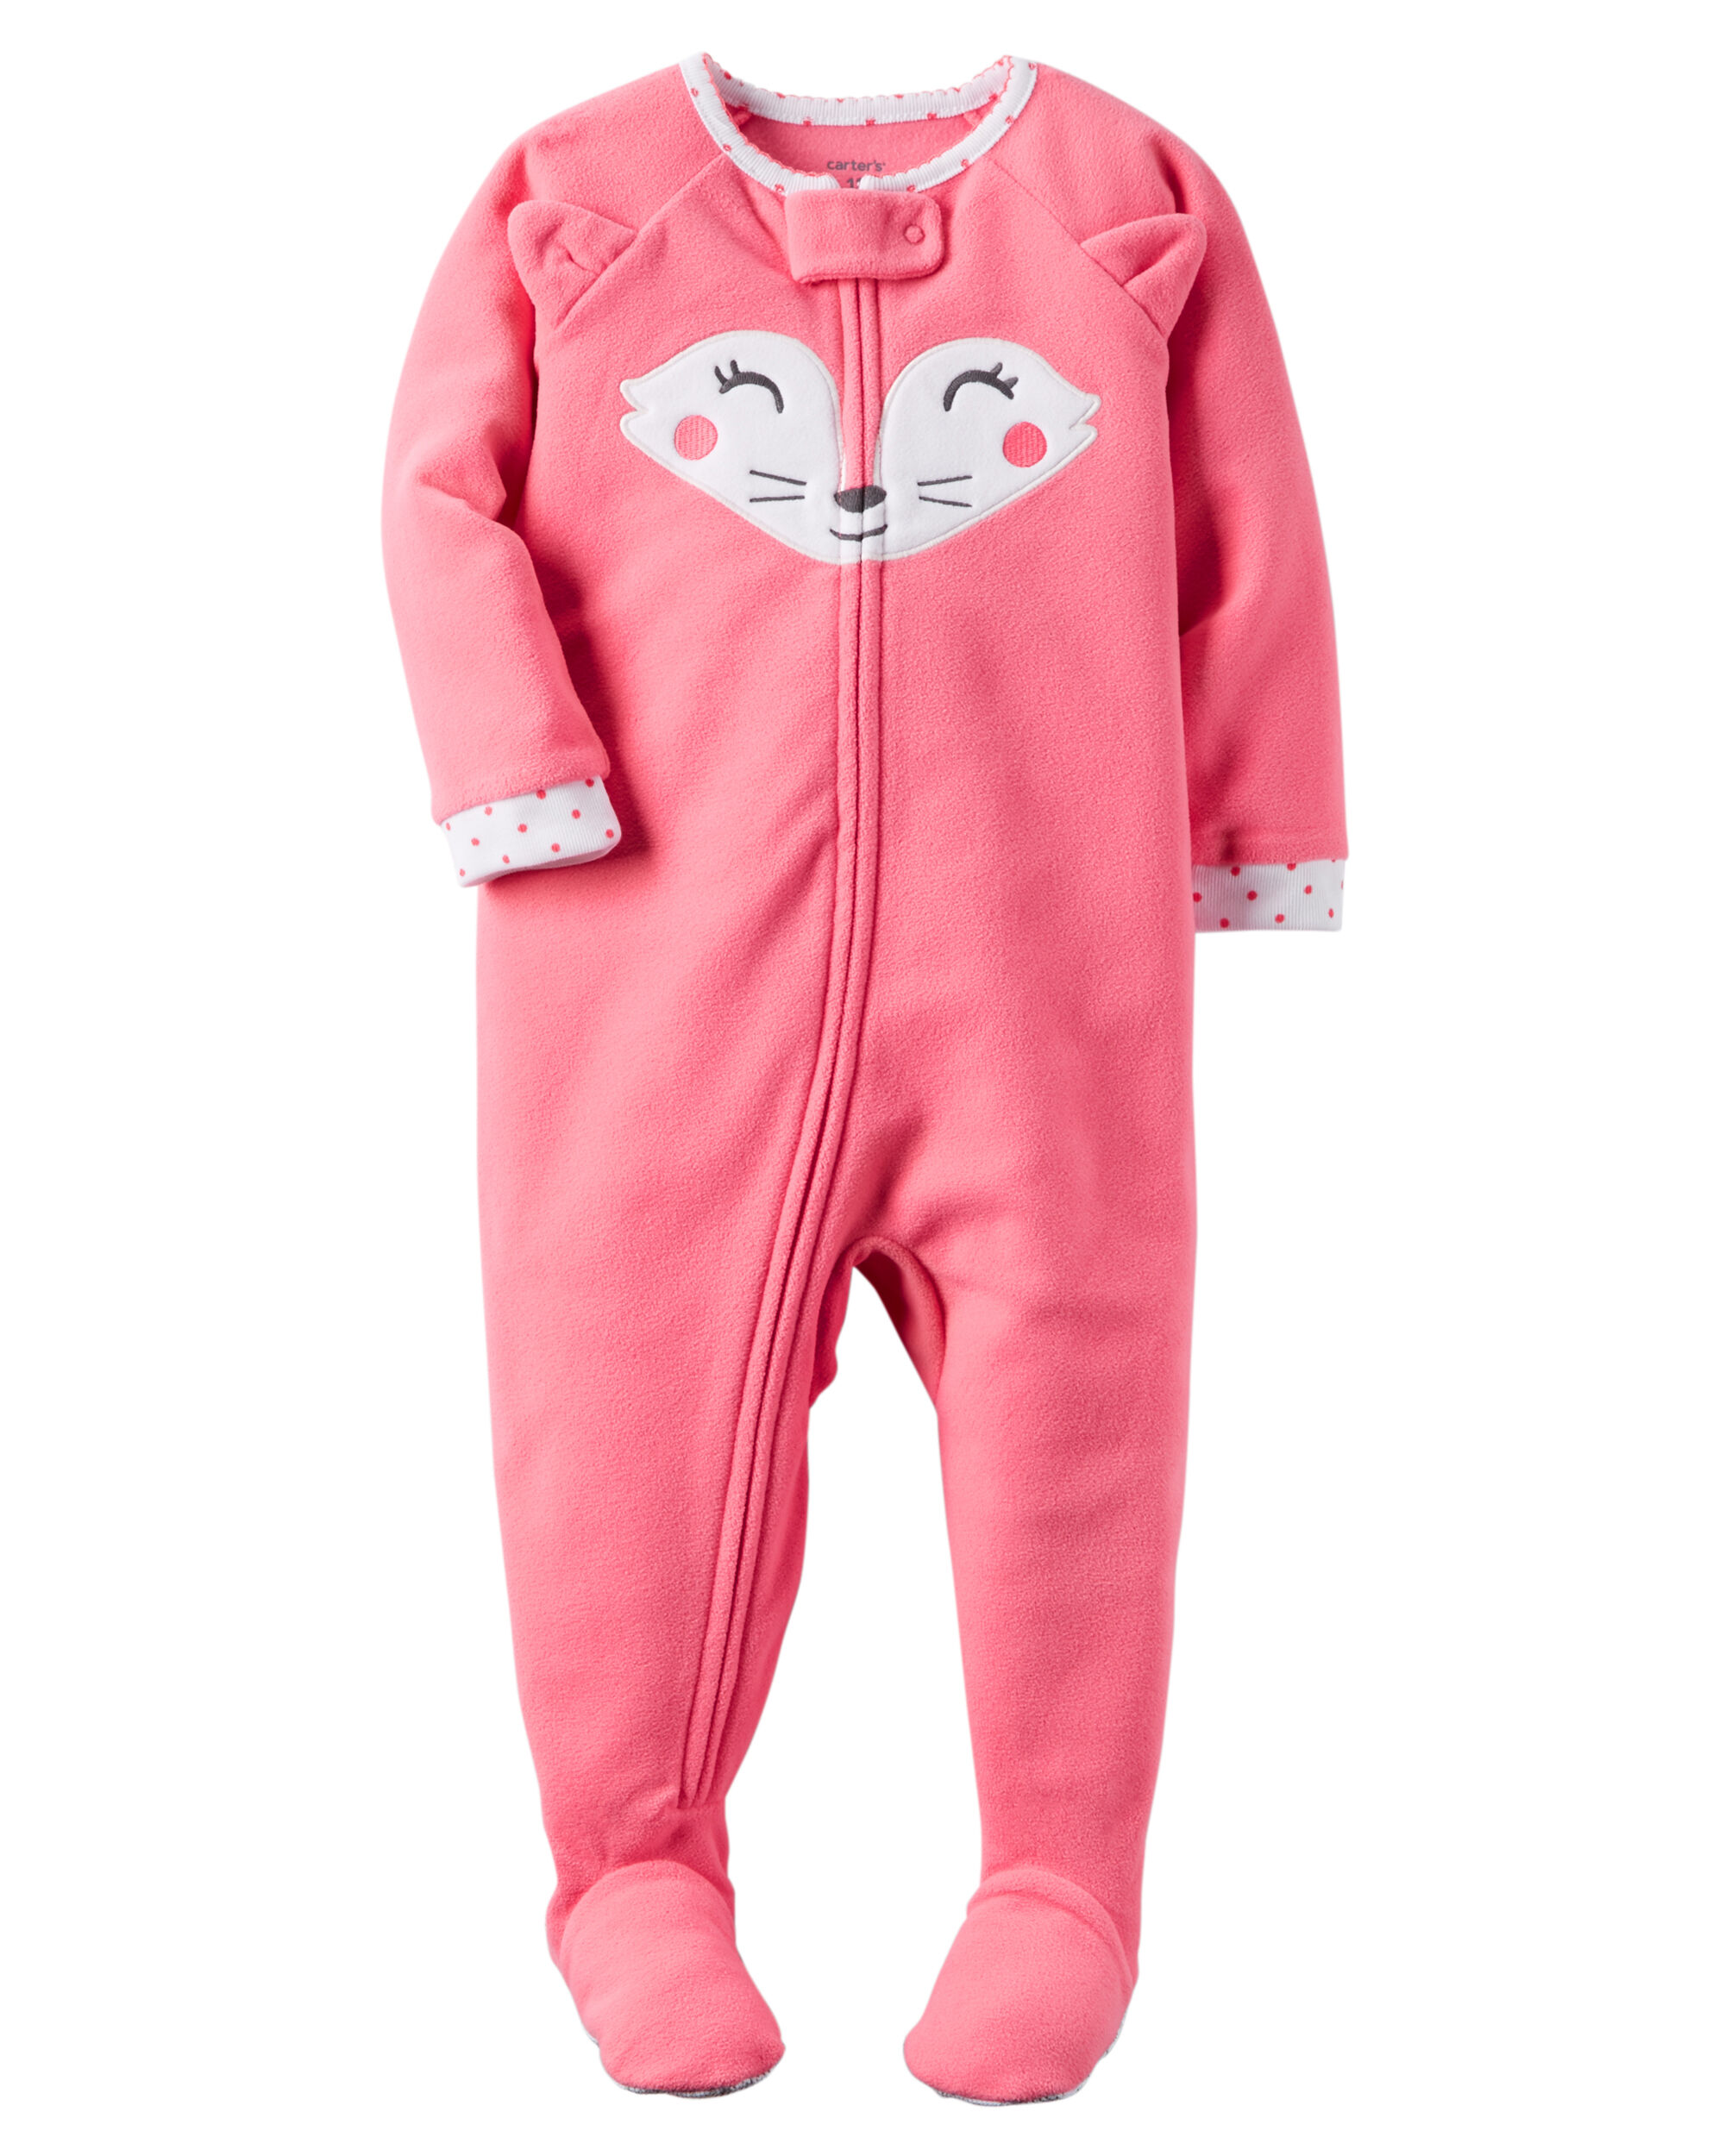 zip n pink girls for ip sleeper sleepers one play white footed p floral pajamas coverall little romper piece sleep me infant footie baby